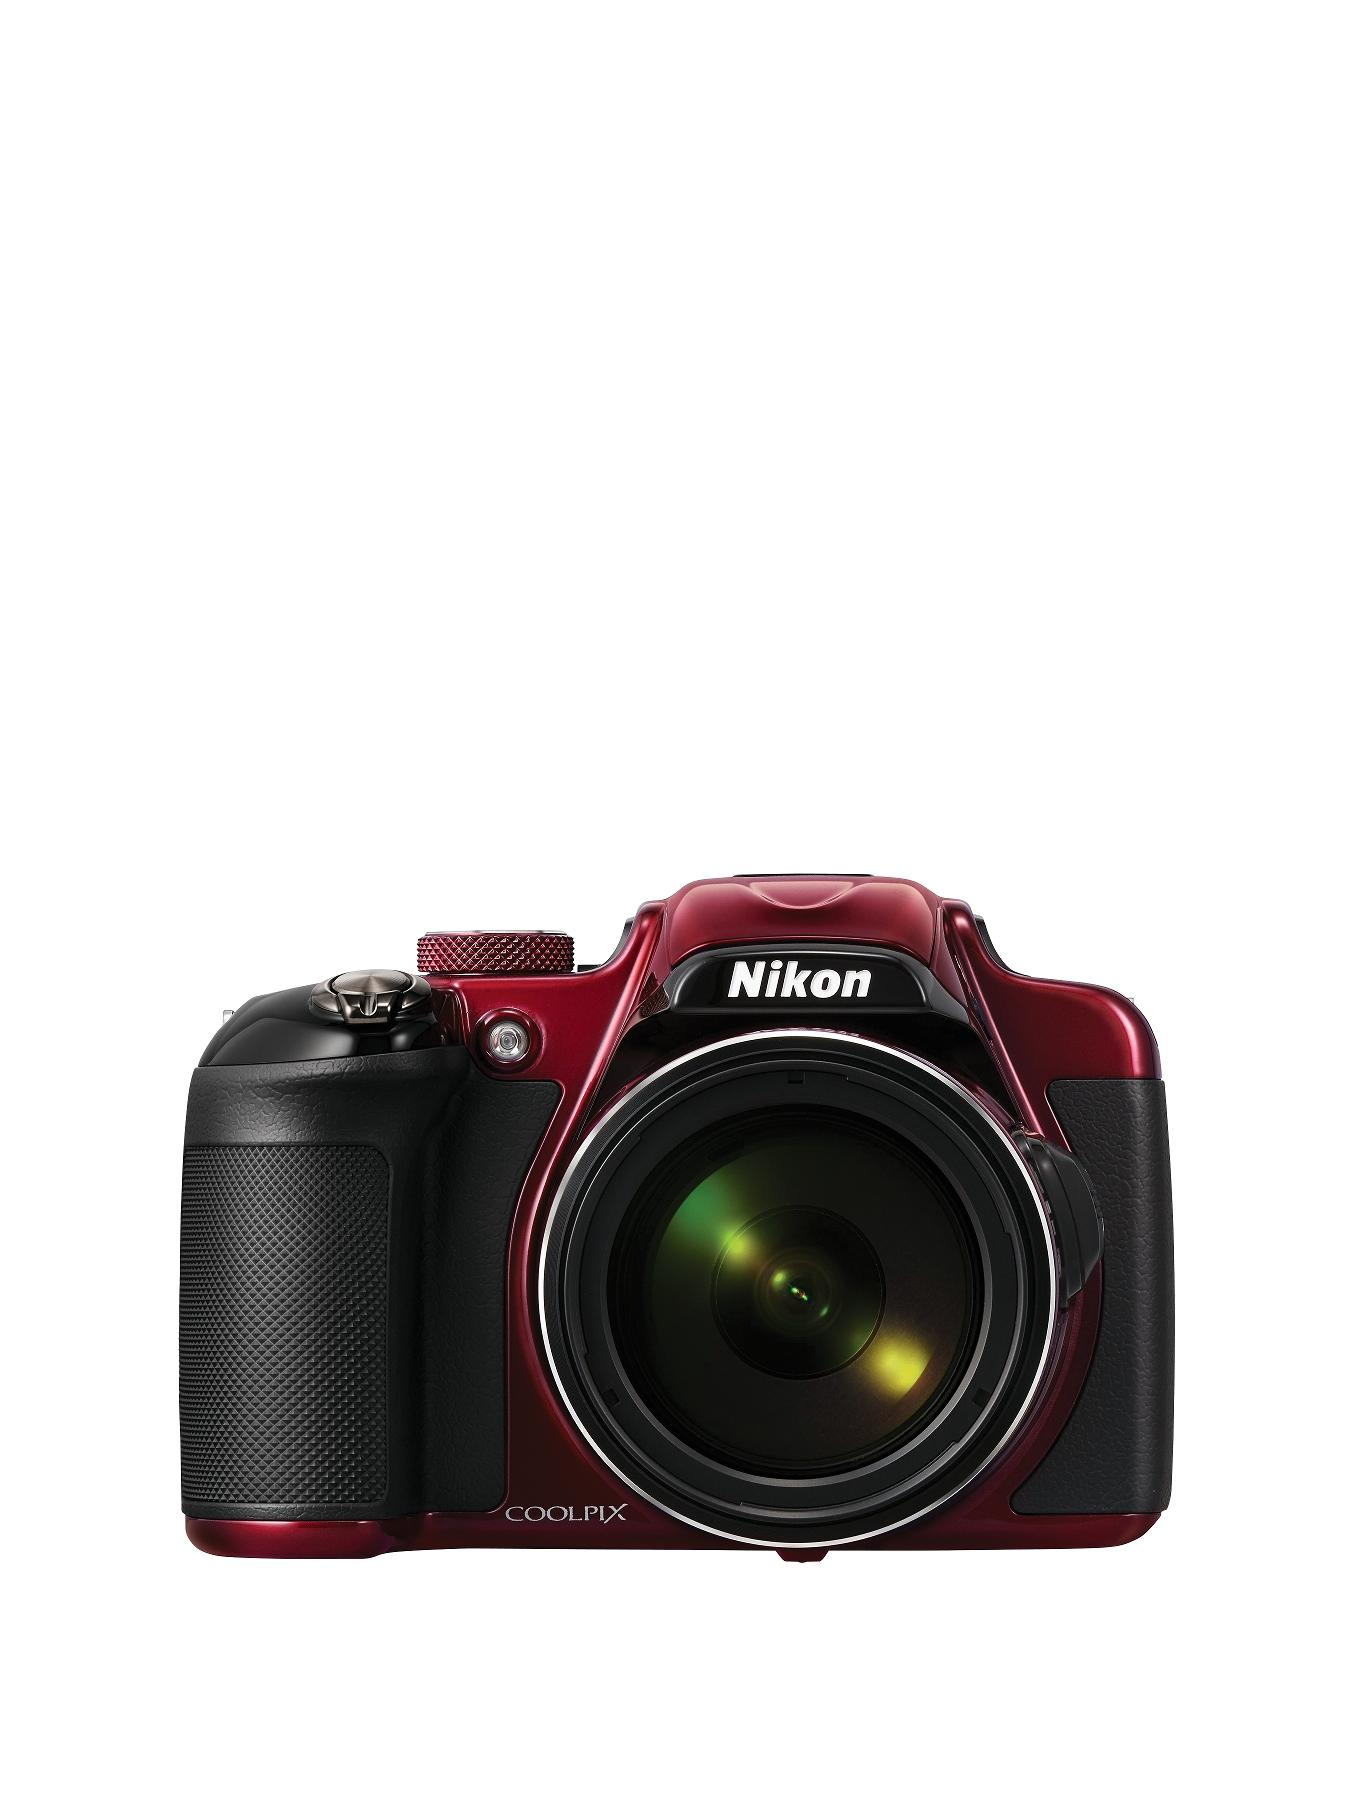 Nikon P600 Coolpix 16 Megapixel Digital Camera - Red